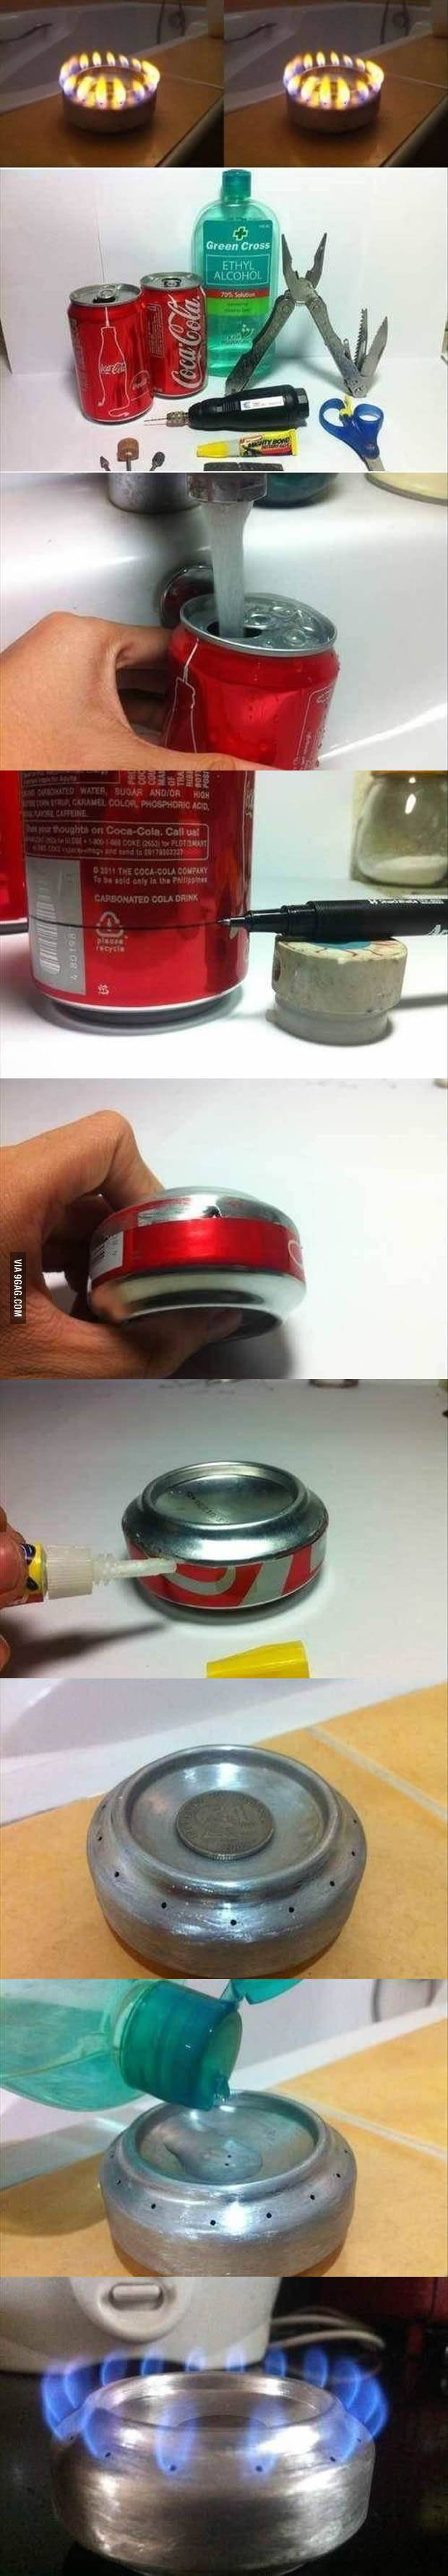 Great idea to take with when camping - 9GAG